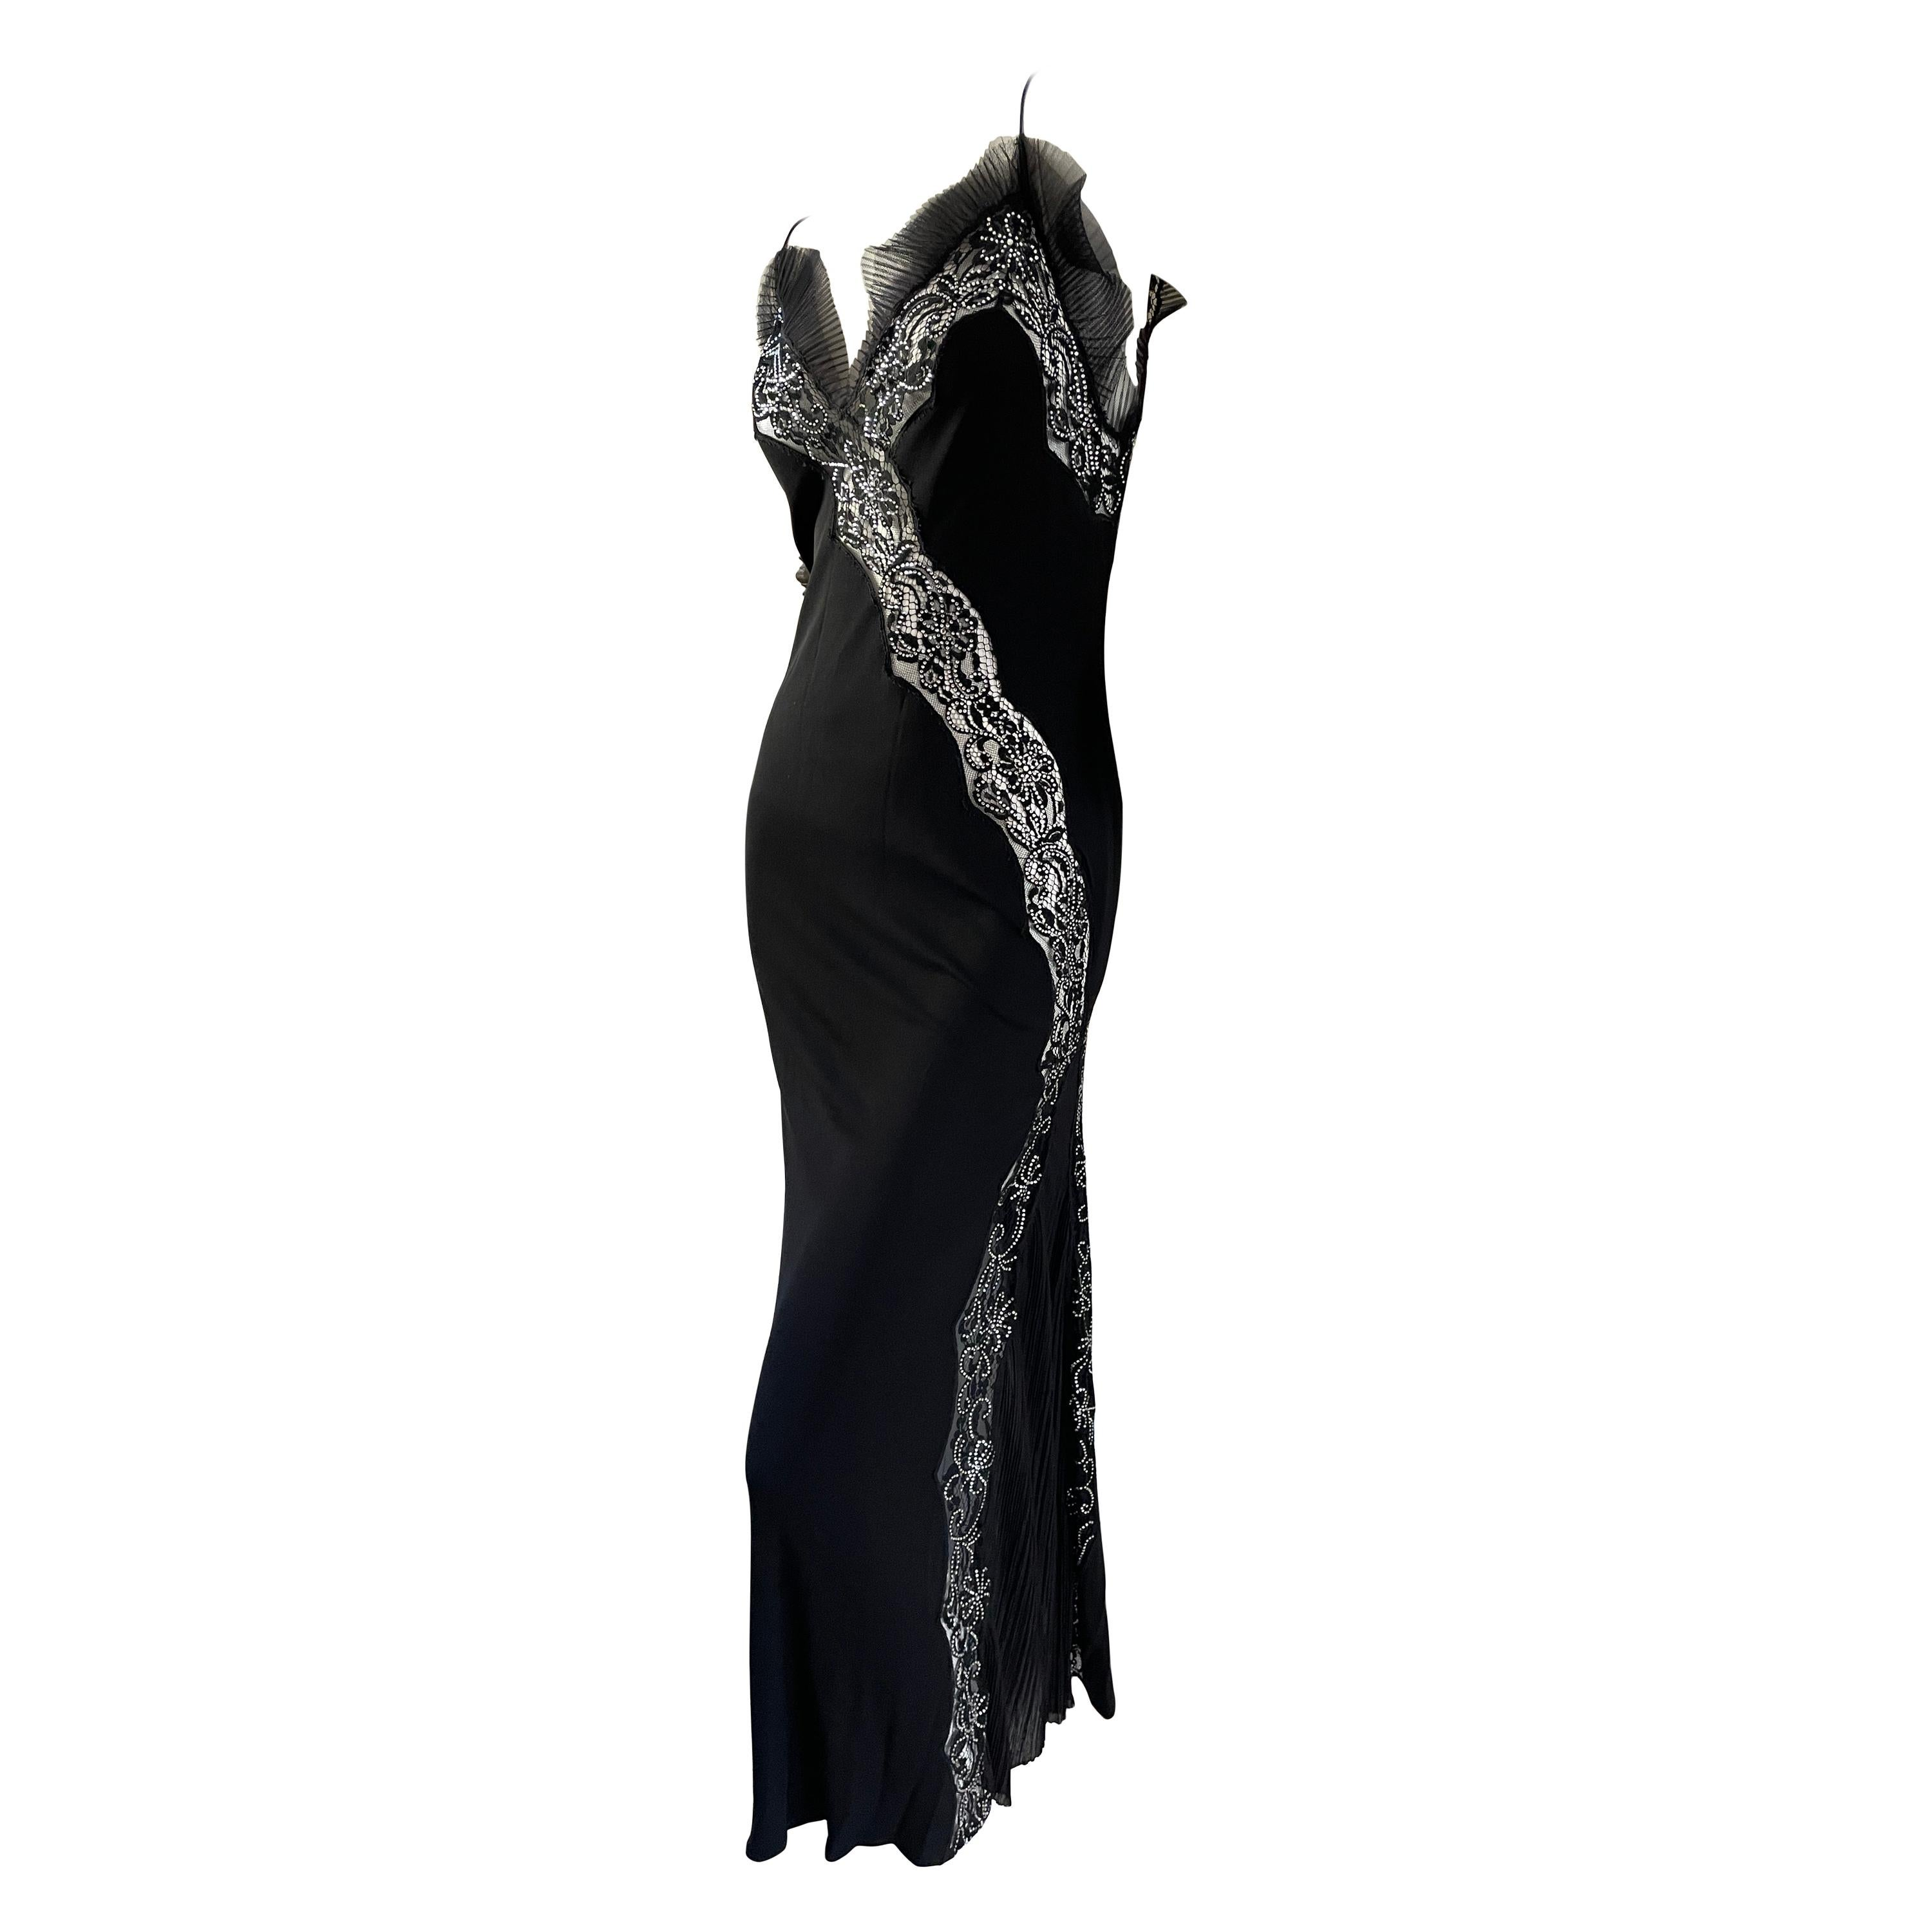 Jiki Monte Carlo Sexy Vintage Lace Trim Sheer Cocktail Dress with Crystal Accent